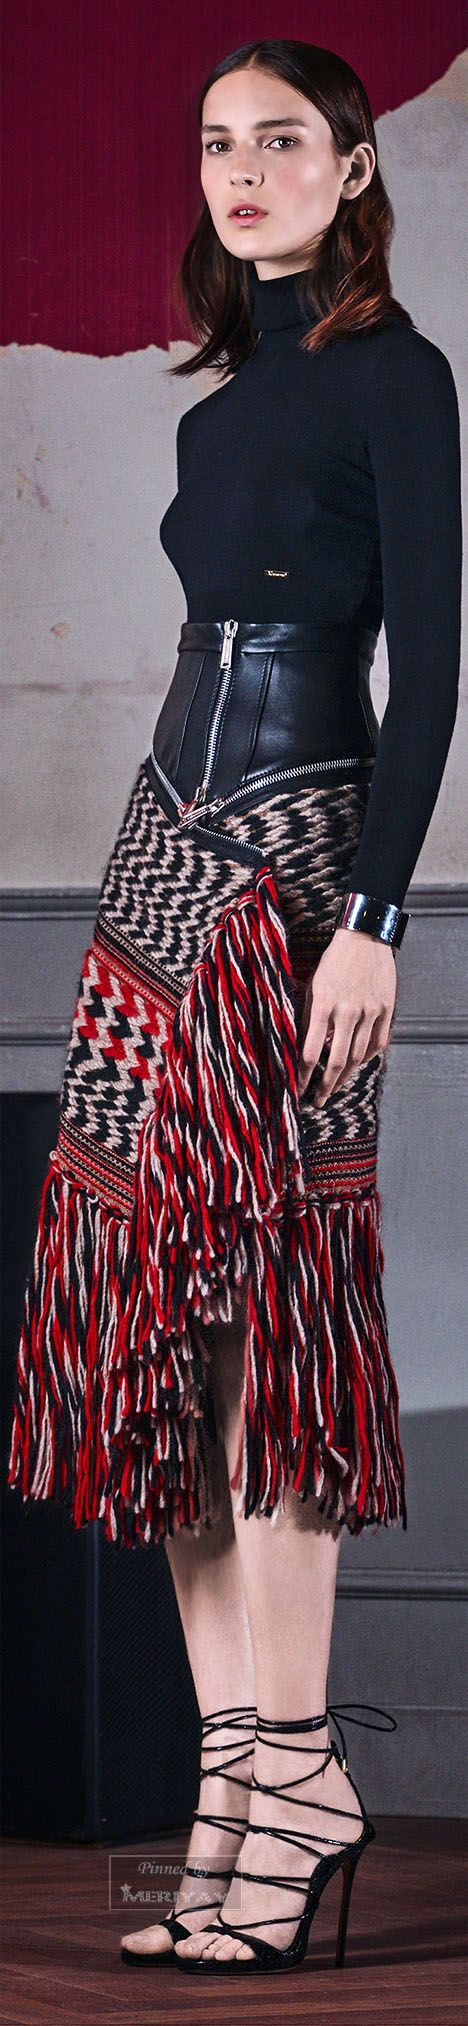 Dsquared² Pre-F 15: turtleneck top, awesome skirt with leather & fringe.